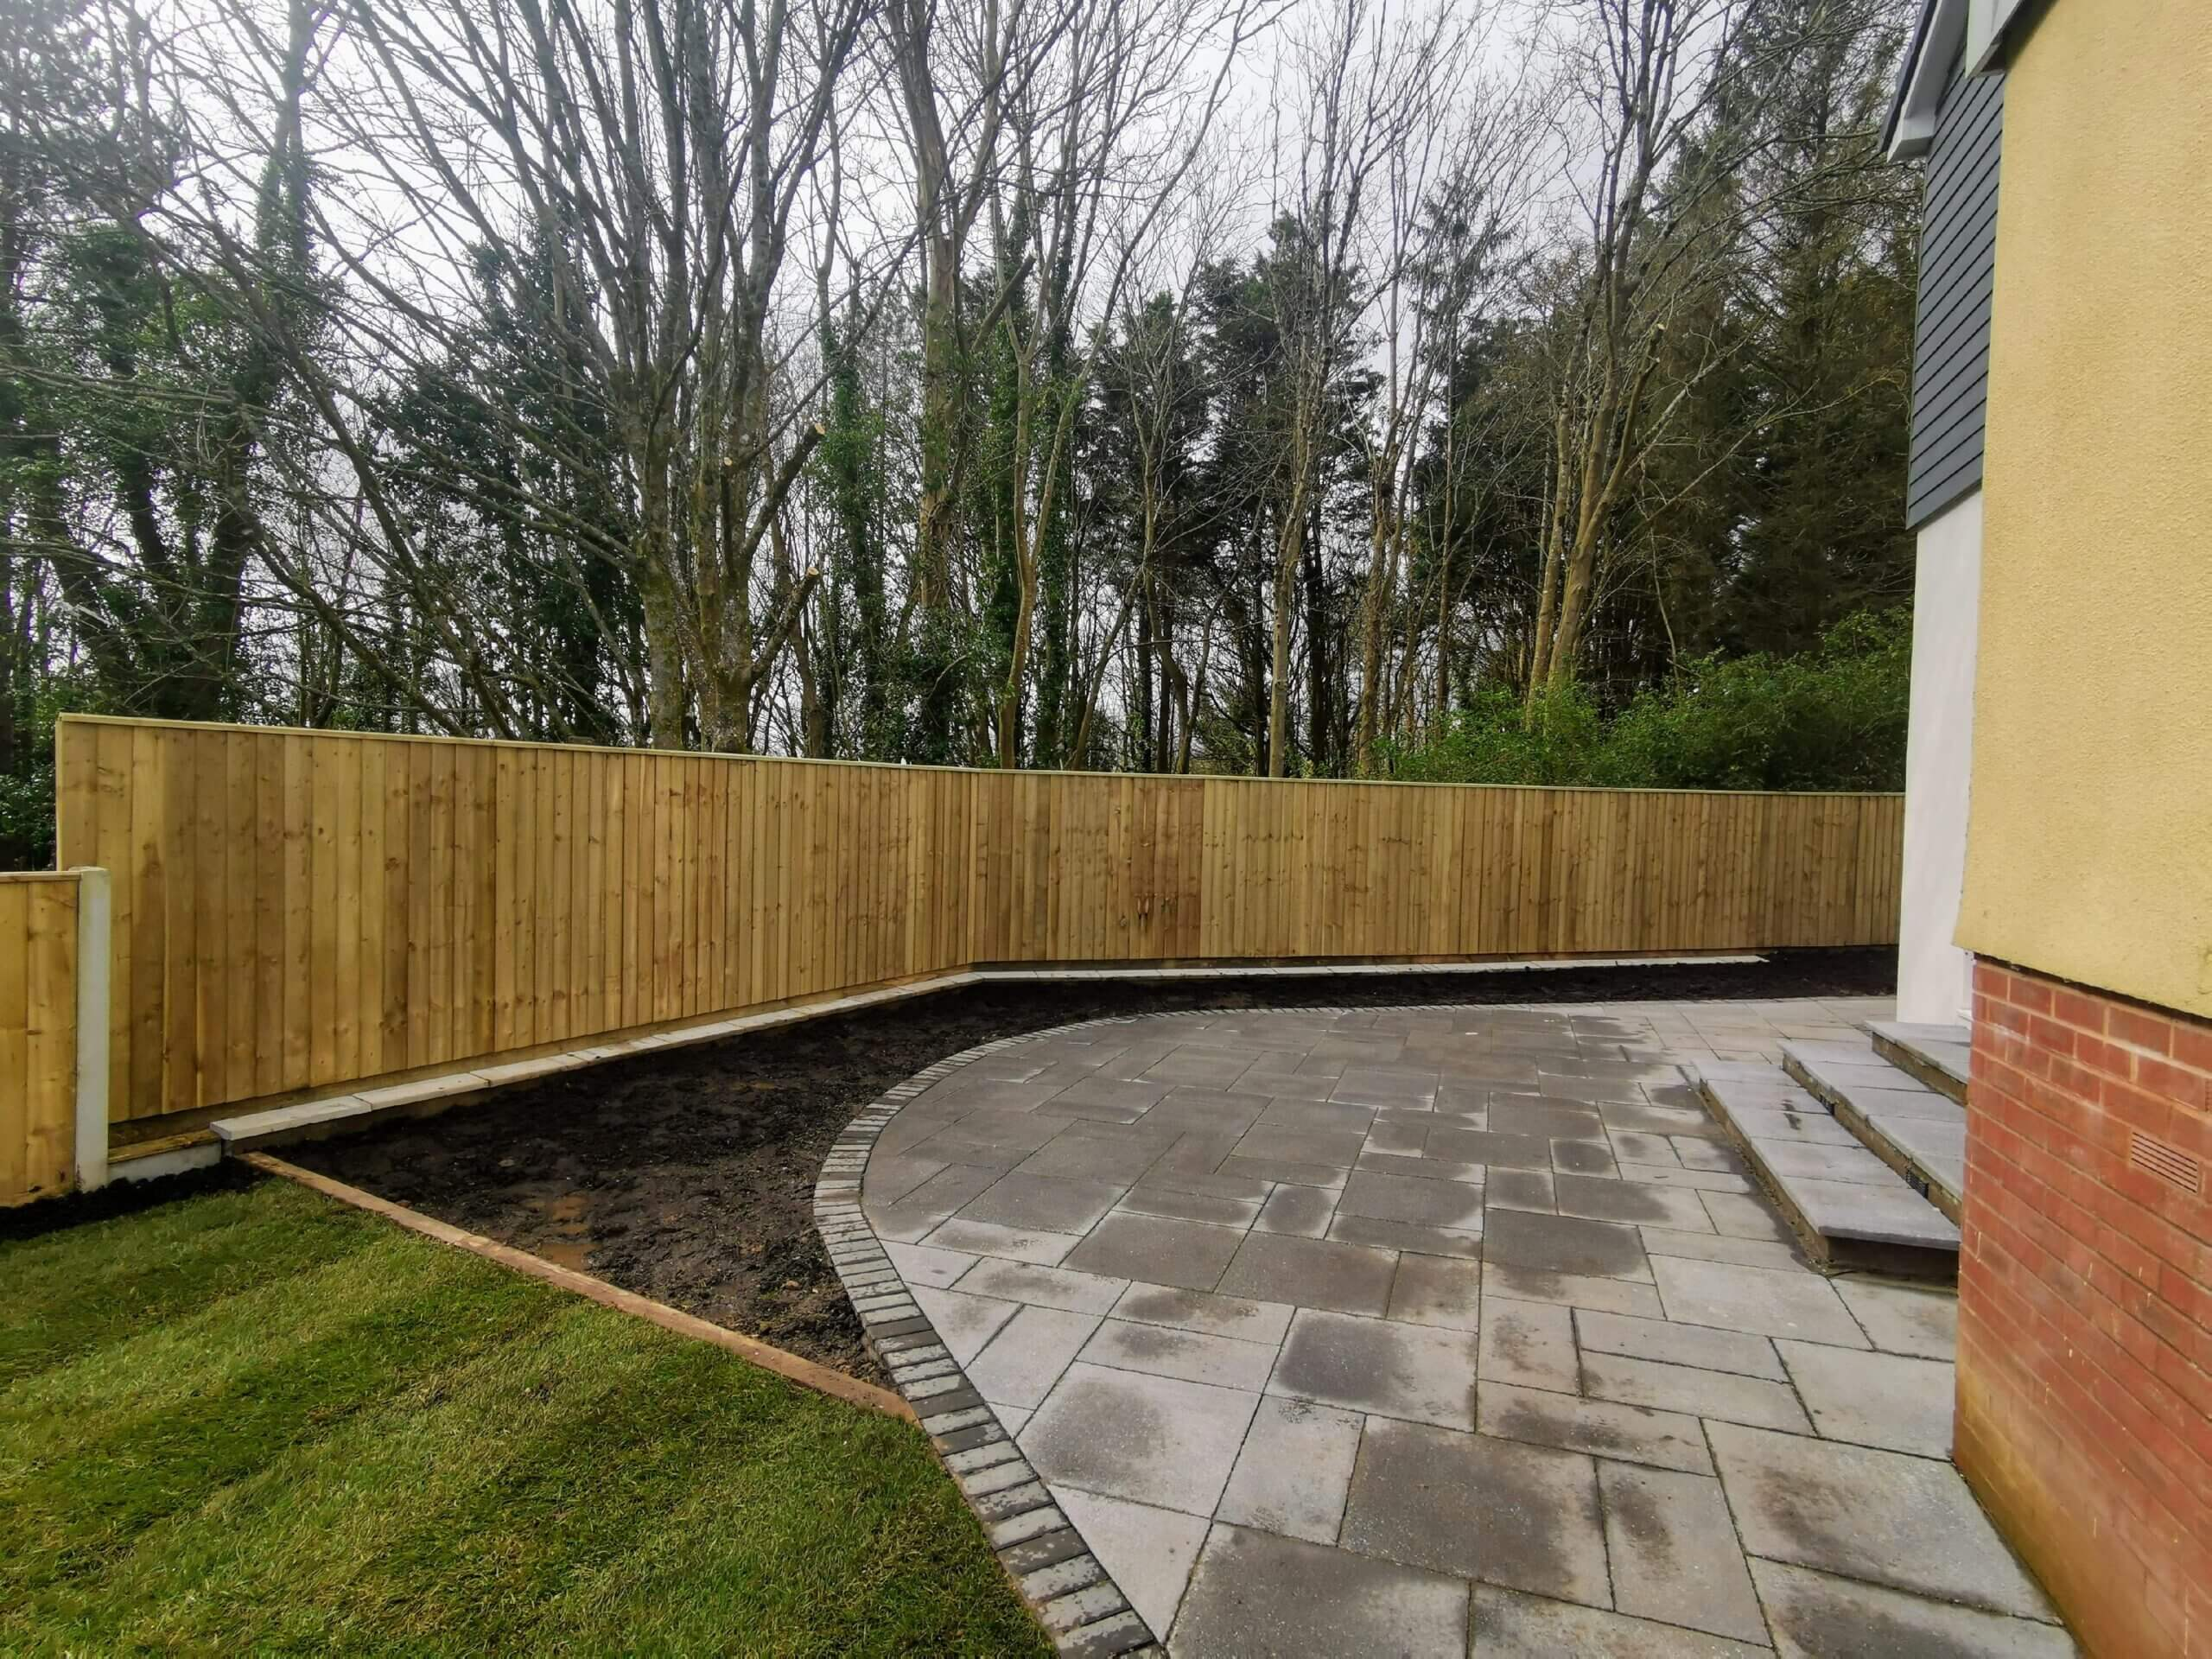 Fencing Contractor in Plymouth - Curved Feather Edge Fencing - Jackson Garden Services